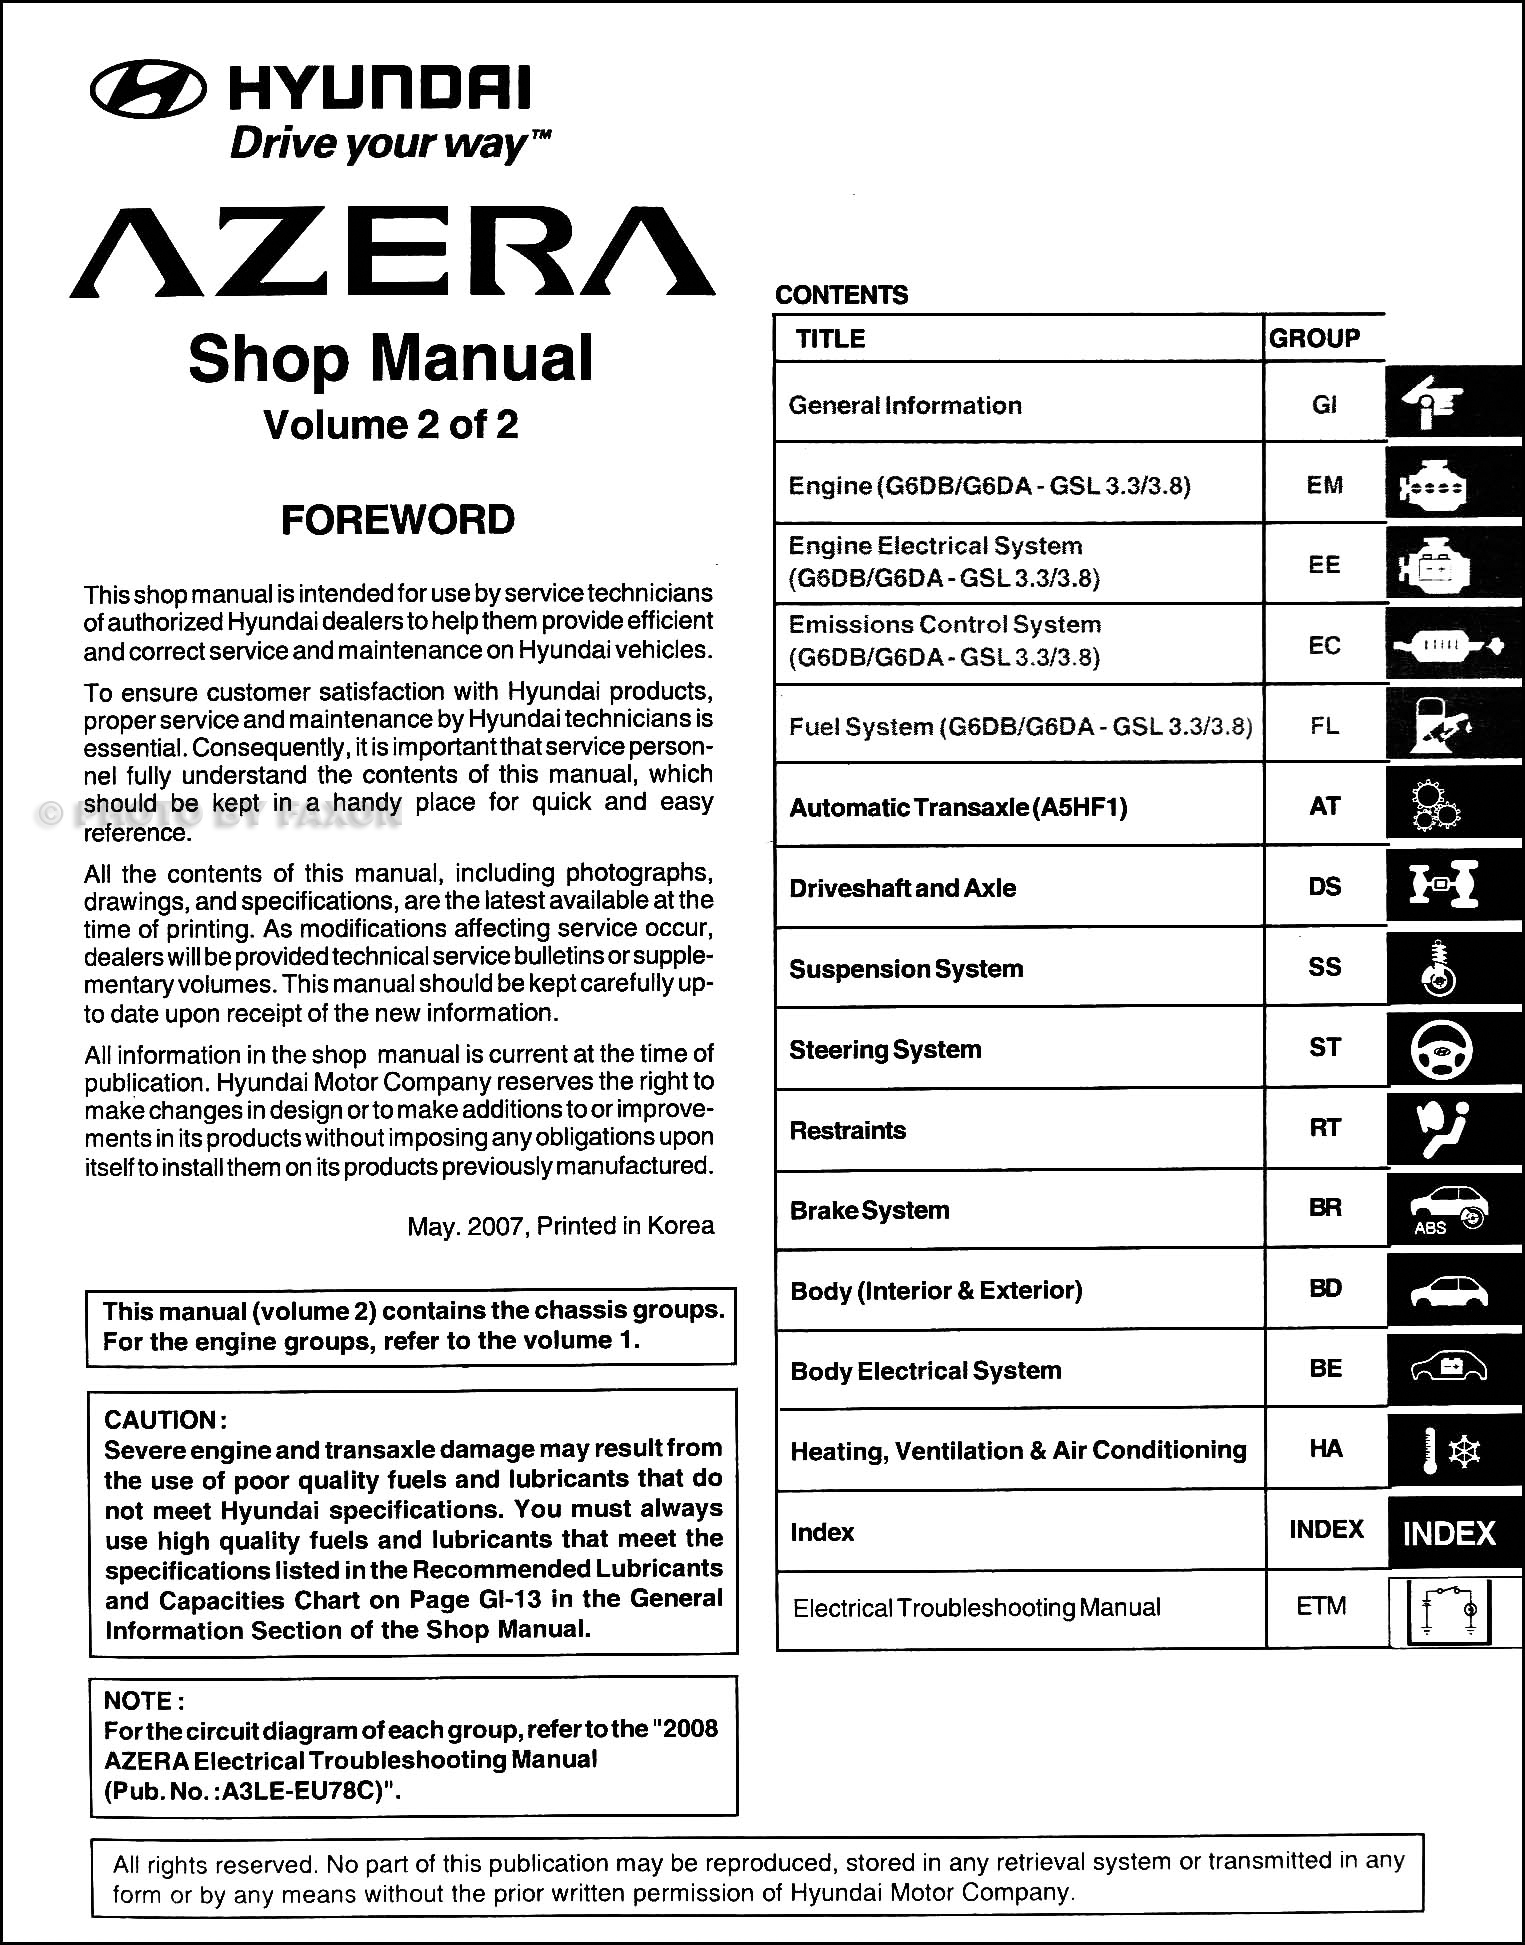 Hyundai Azera Wiring Diagrams Guide And Troubleshooting Of 2006 Fuse Box 2008 Diagram Library Rh 16 Skriptoase De 2005 Sonata